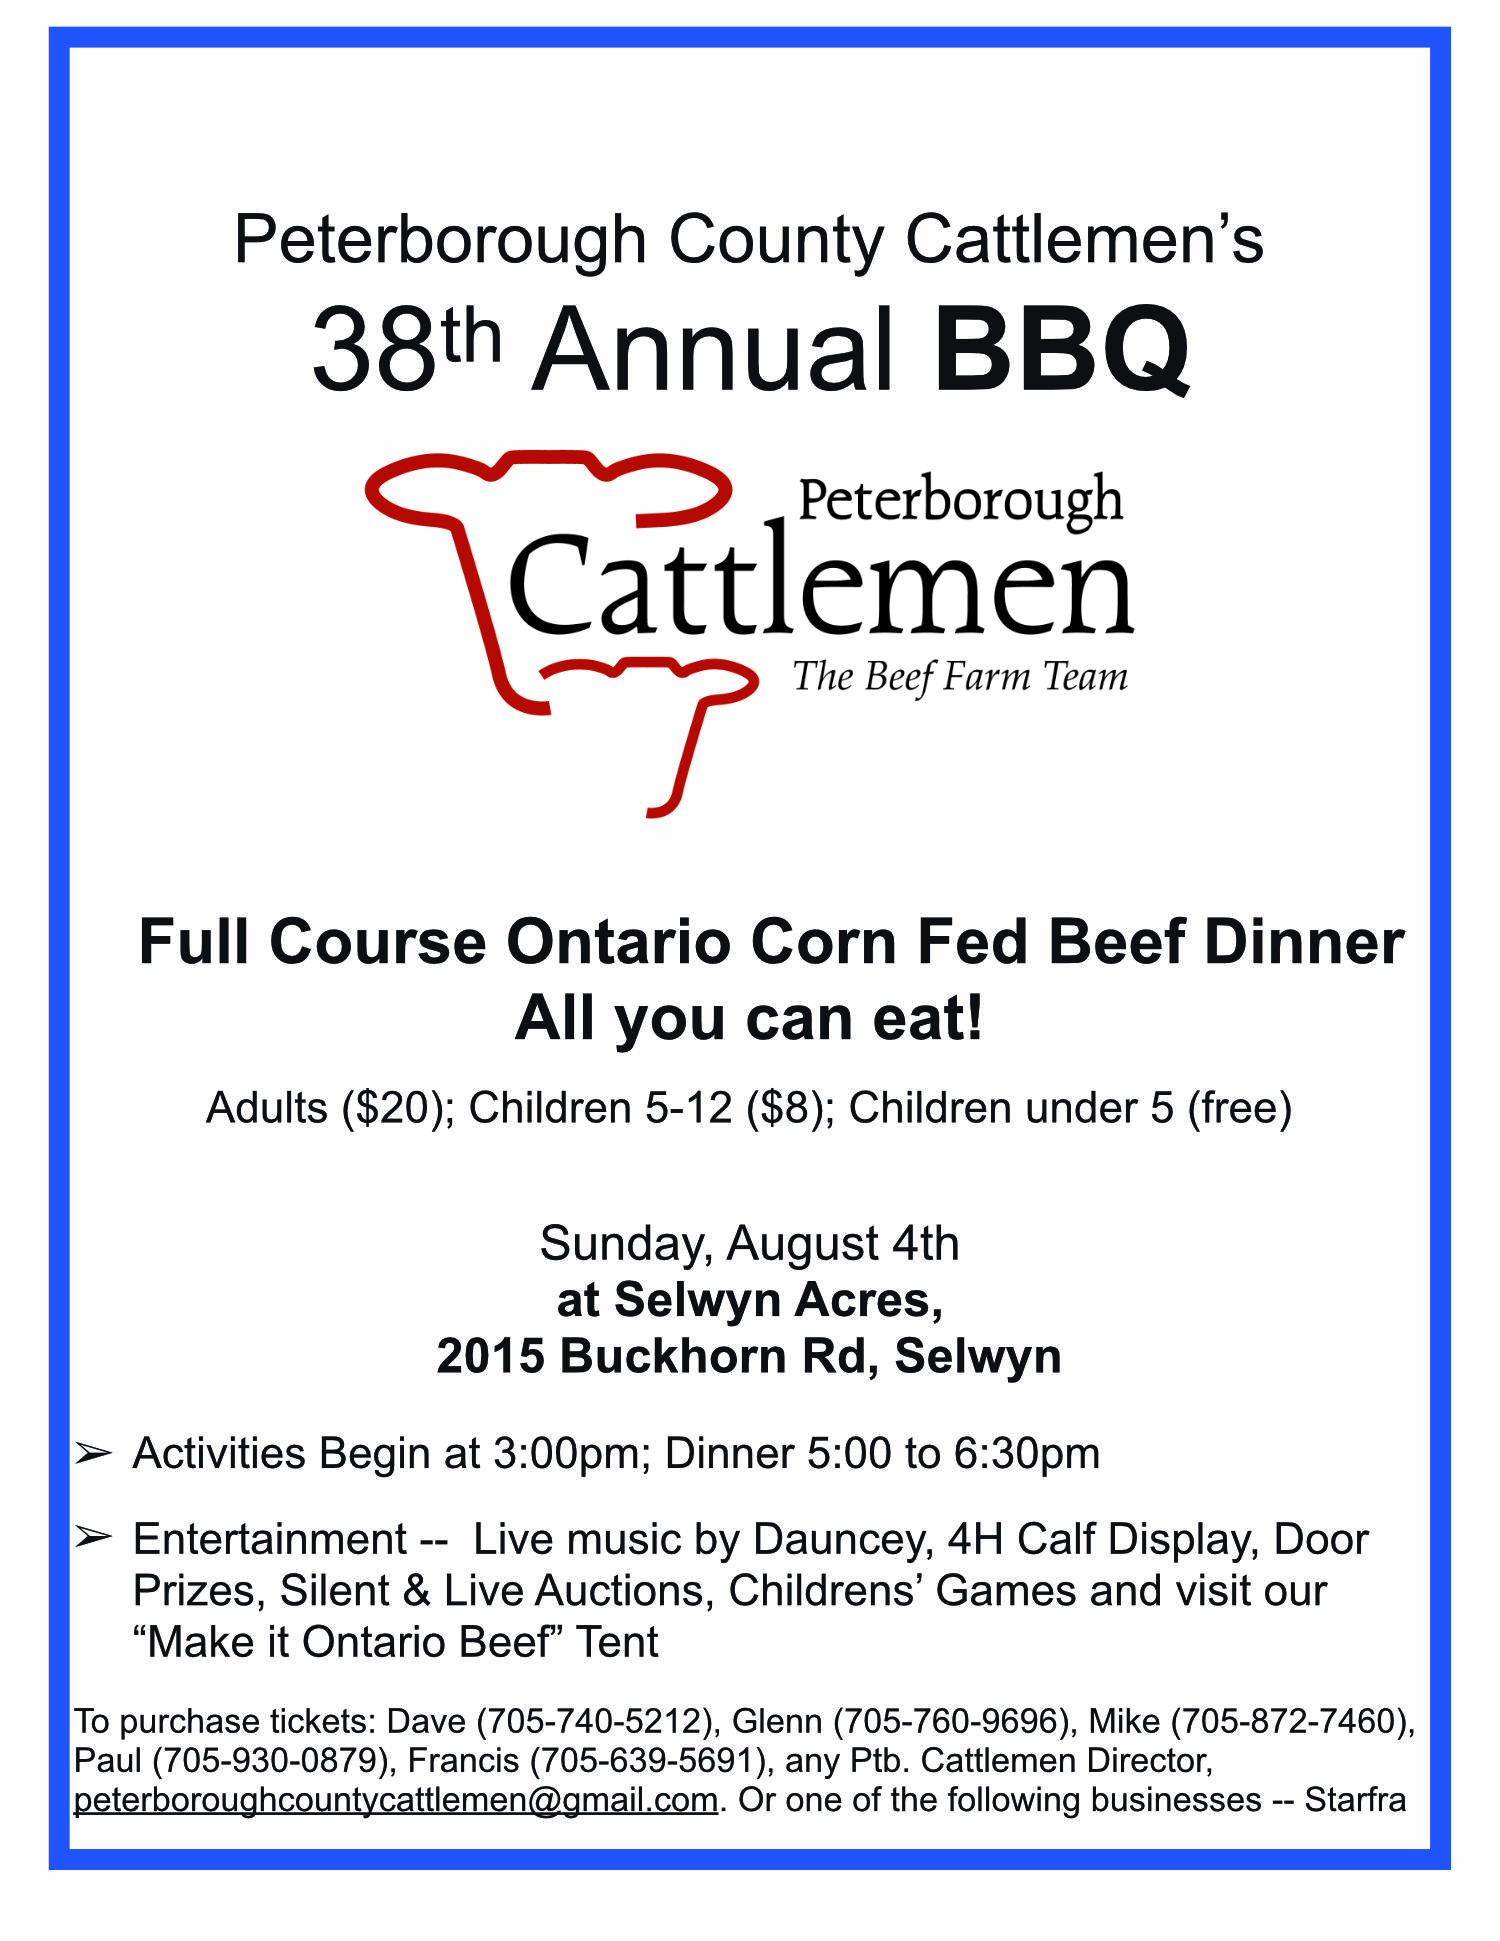 Once again this year, the Peterborough County Cattlemen will be host their annual barbecue. This year the barbecue will be held on Sunday, August 4, 2019 at Selwyn Acres, 2015 Buckhorn Rd, Selwyn.